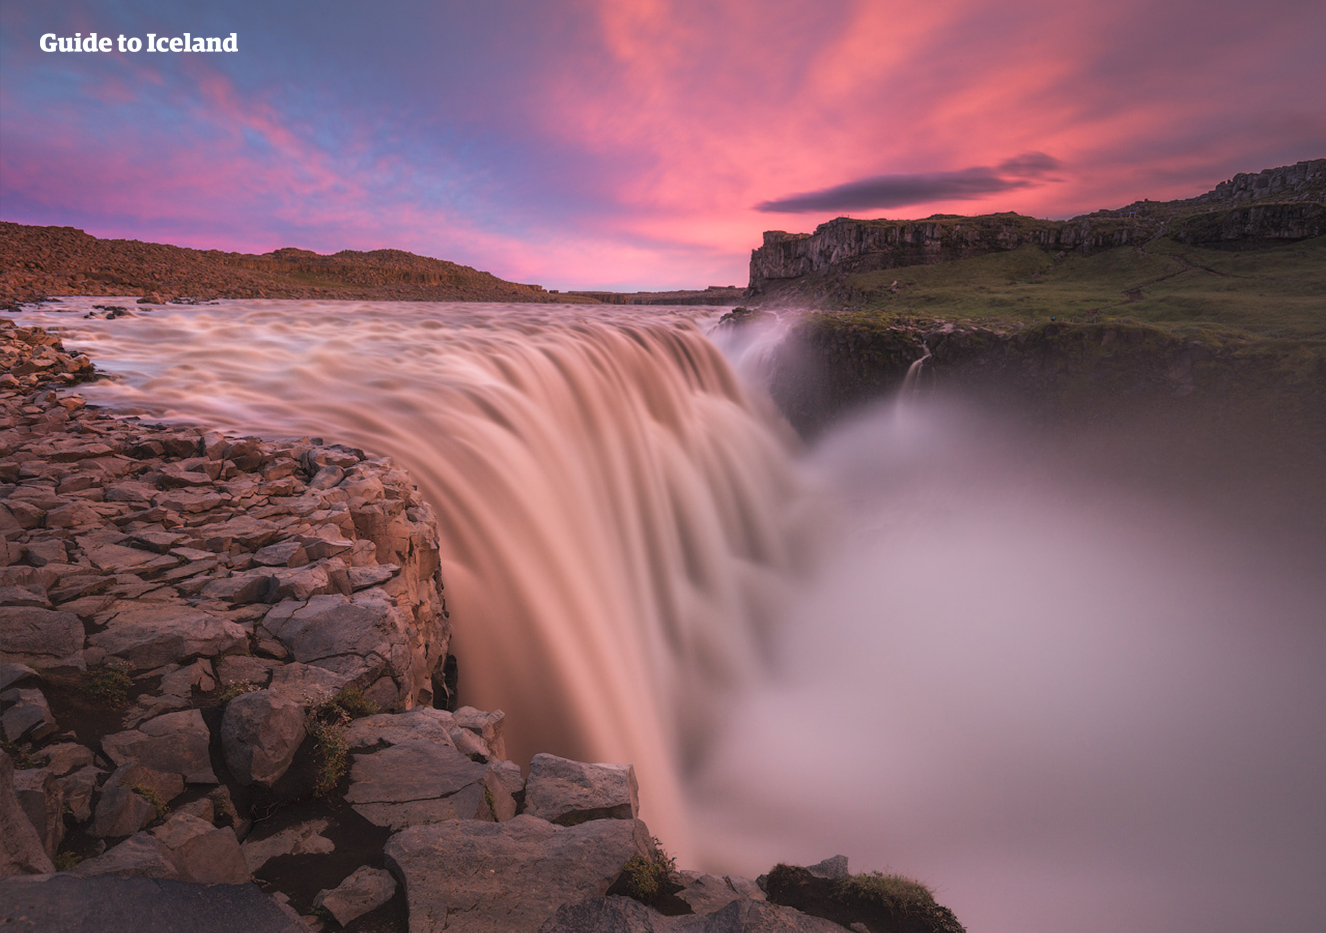 Dettifoss has the greatest flow rate of any waterfall in Europe and boasts a total height of 44 metres.